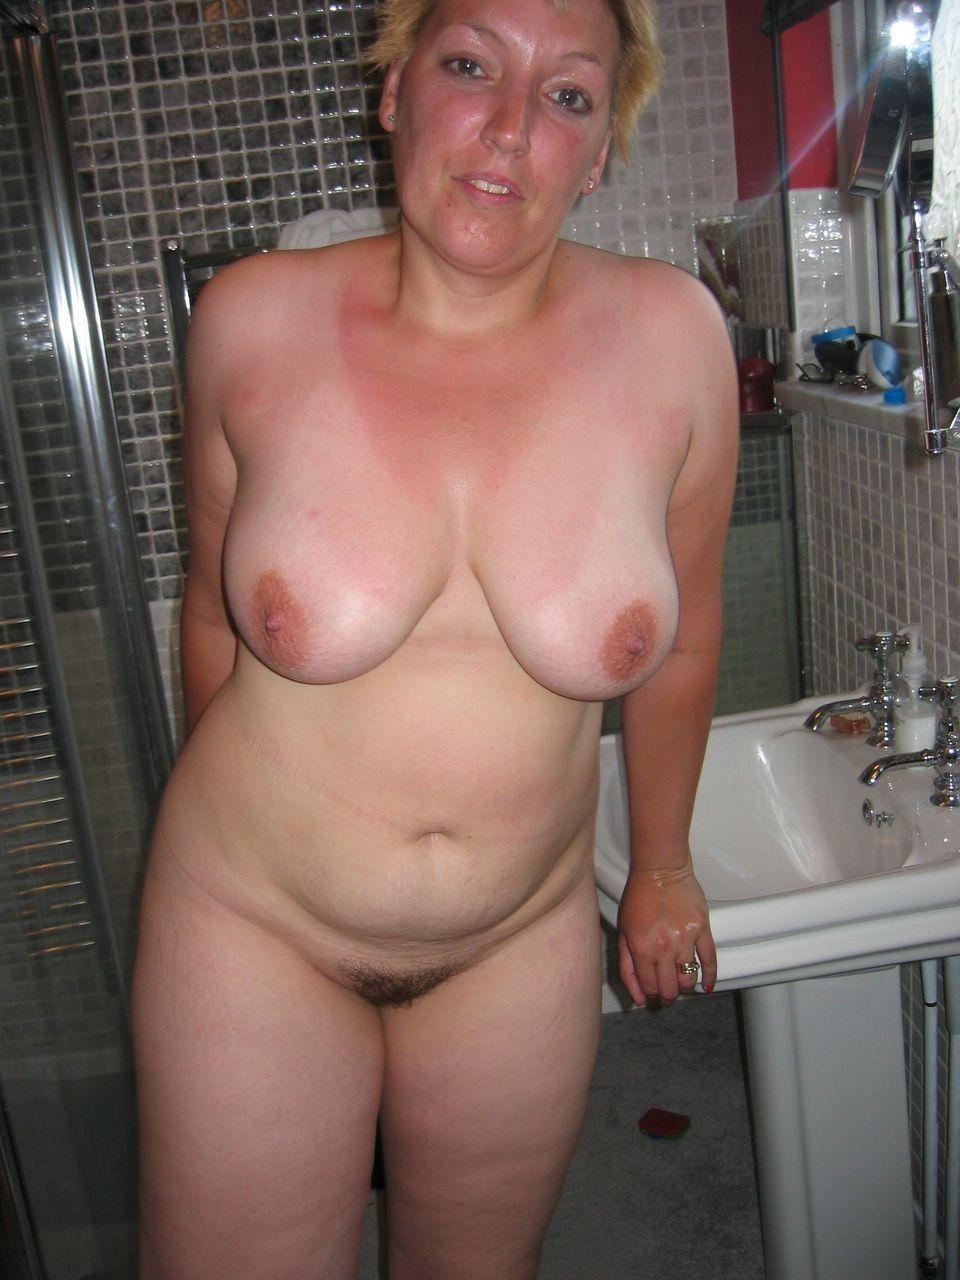 Bbw Housewife Porn Hd amateur housewife nude selfies - xxx photo. comments: 2